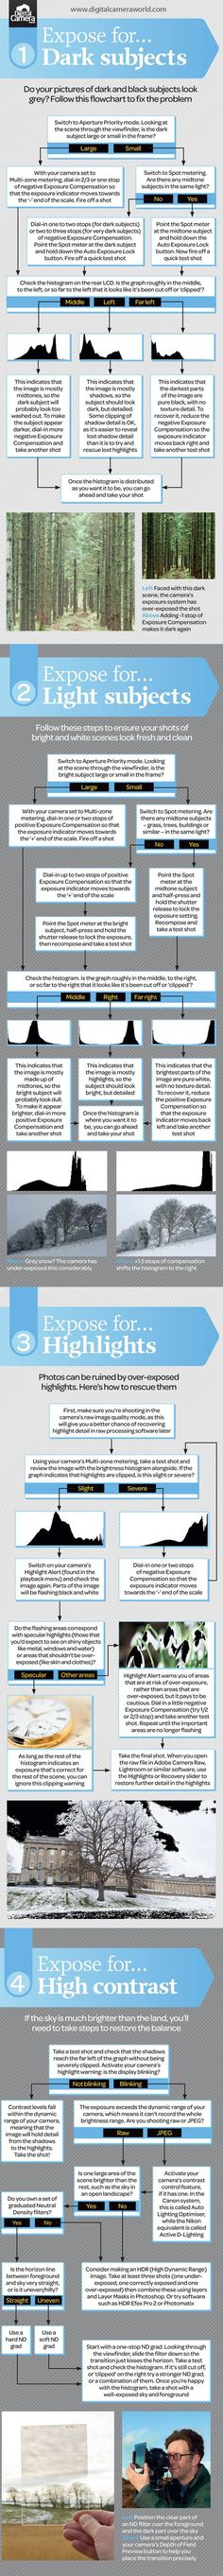 Cheat Sheet: How to Get Metering and Exposure Right